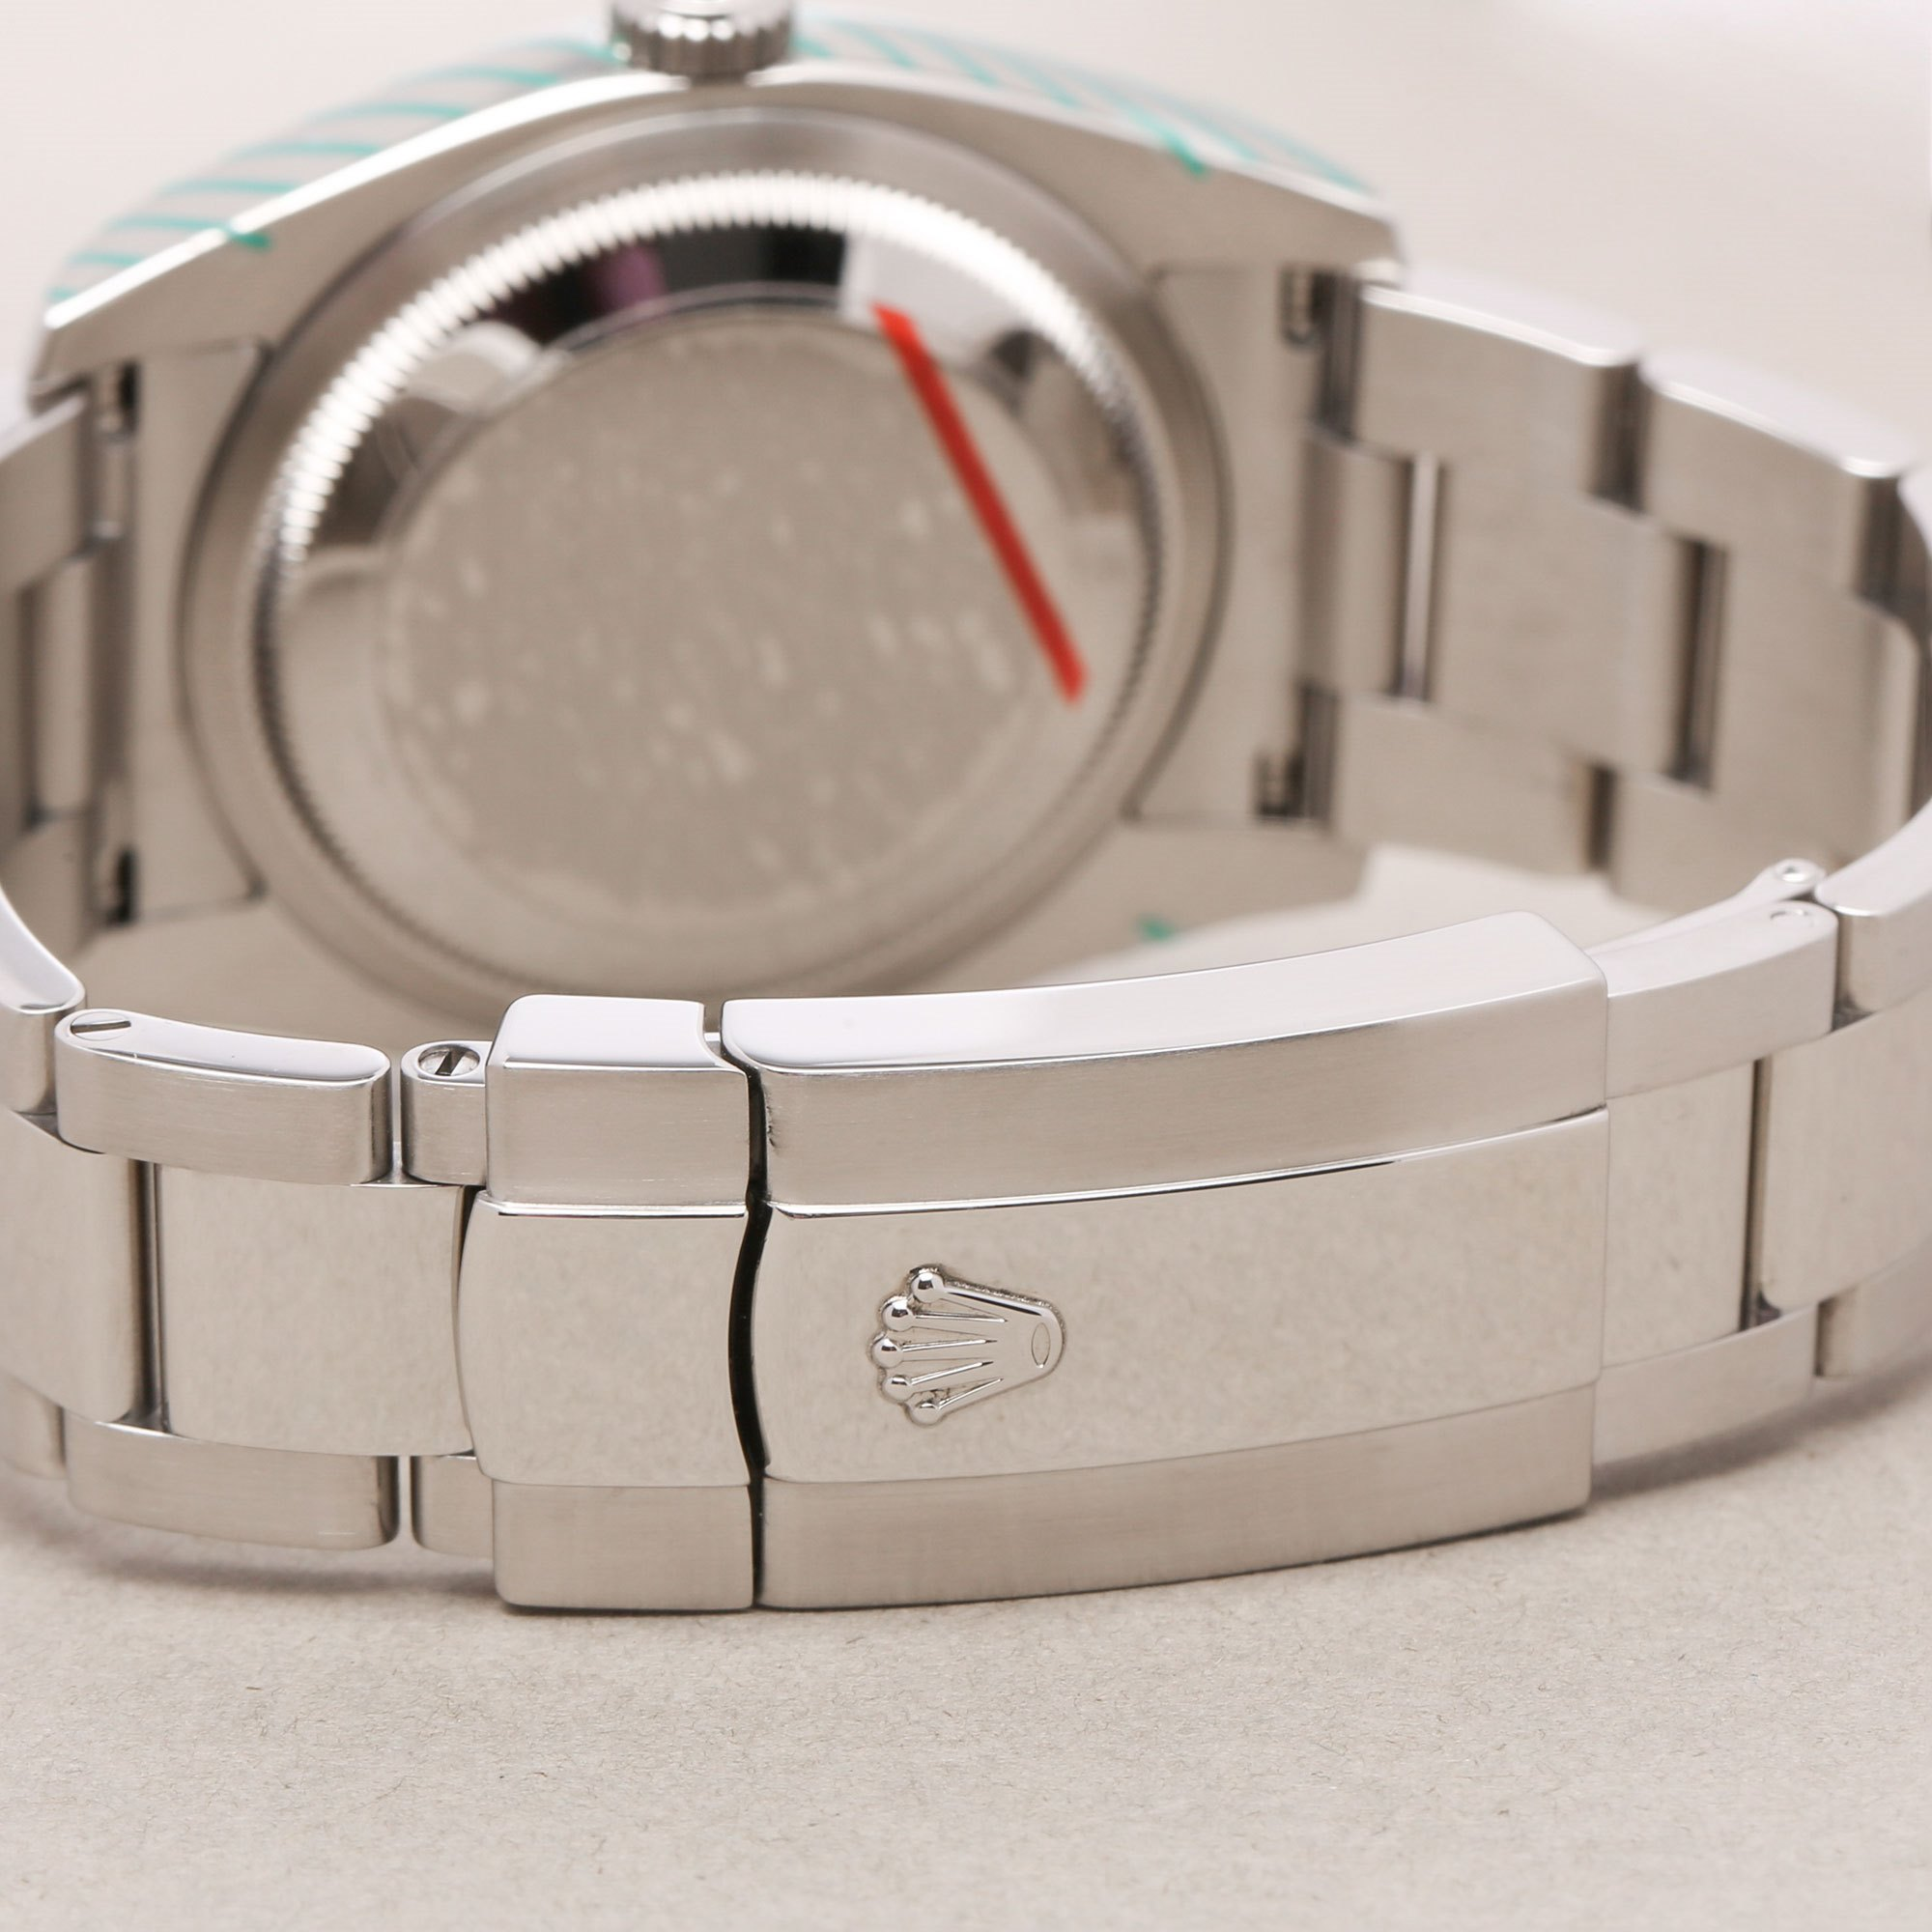 Rolex Datejust 36 116200 Men's Stainless Steel Watch - Image 7 of 12